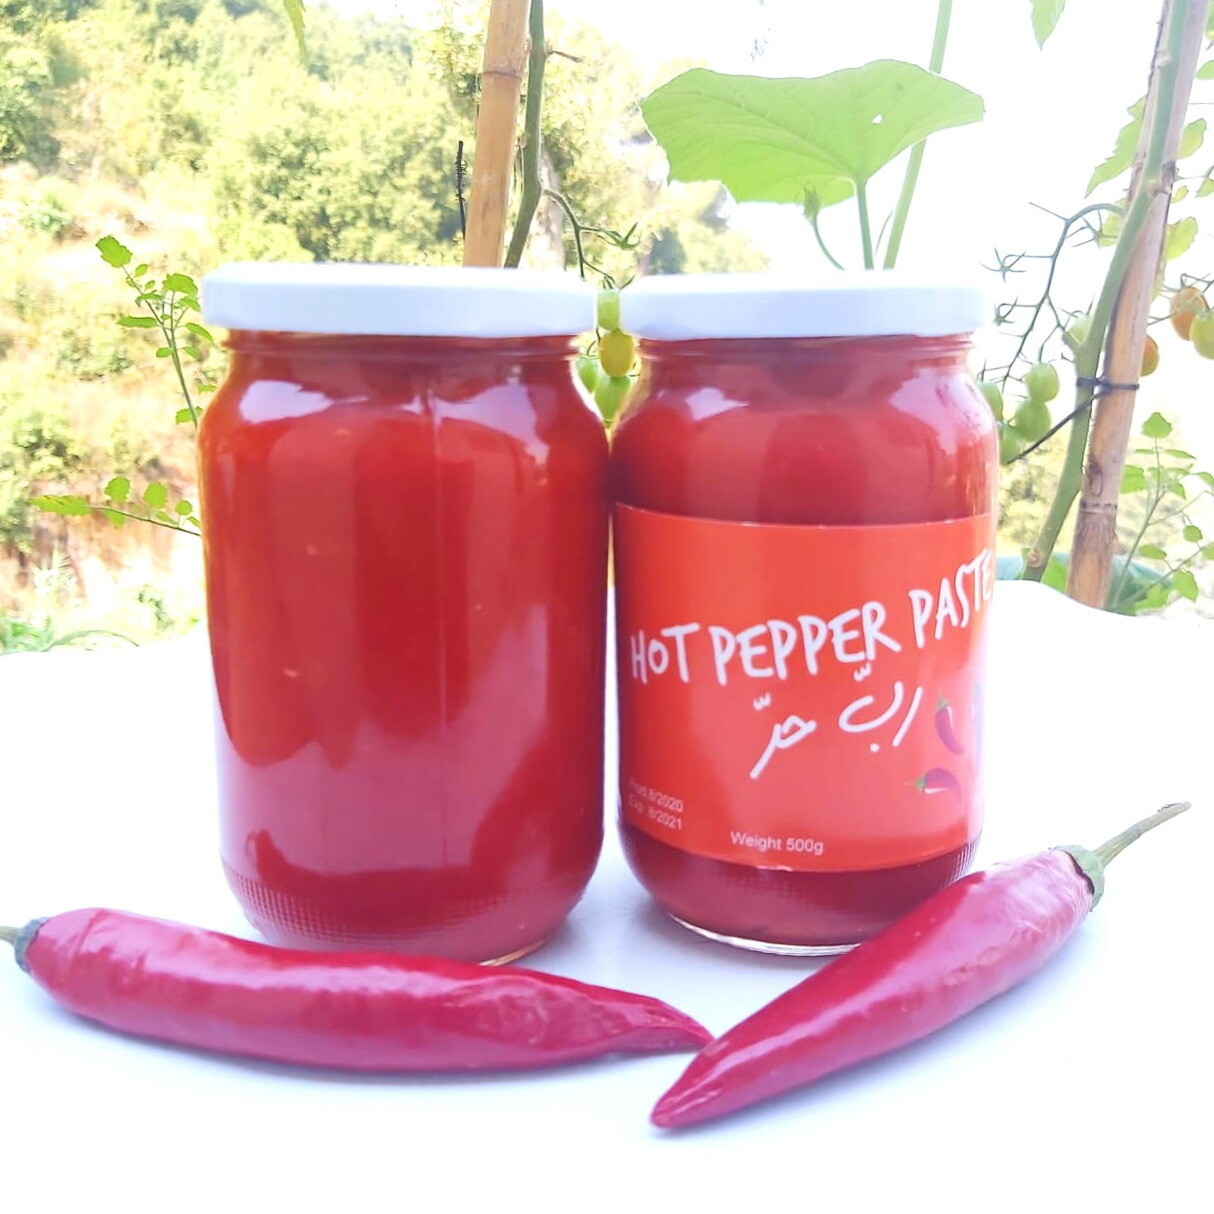 Pepper Hot Paste رب الفلفل الحار (Jar) - Les Reserves du Grenier